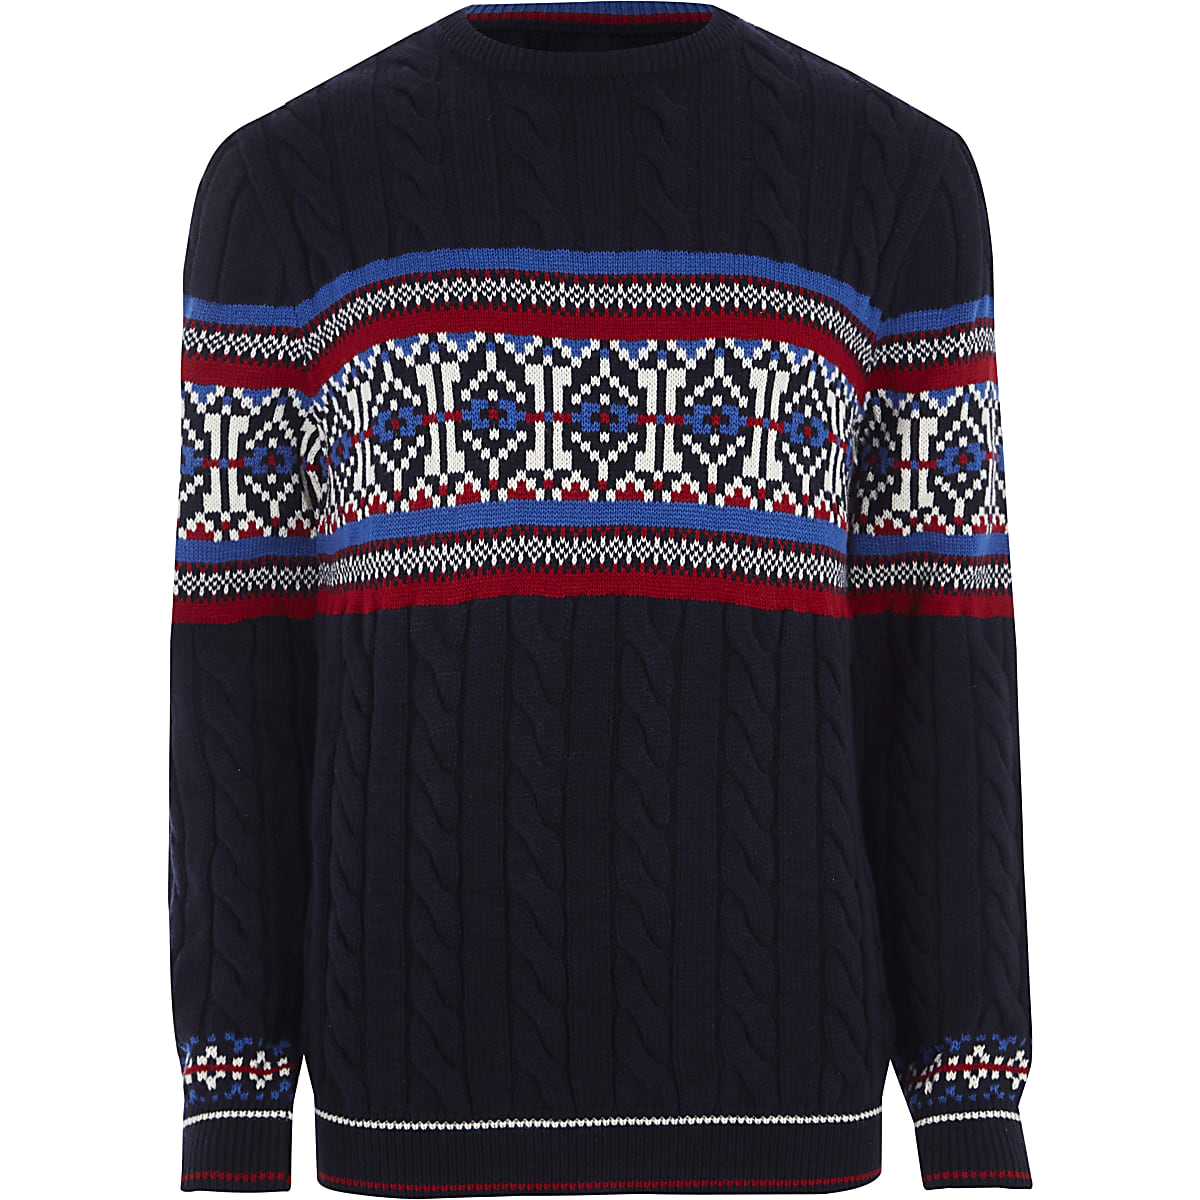 Navy Fairisle cable knit Christmas jumper